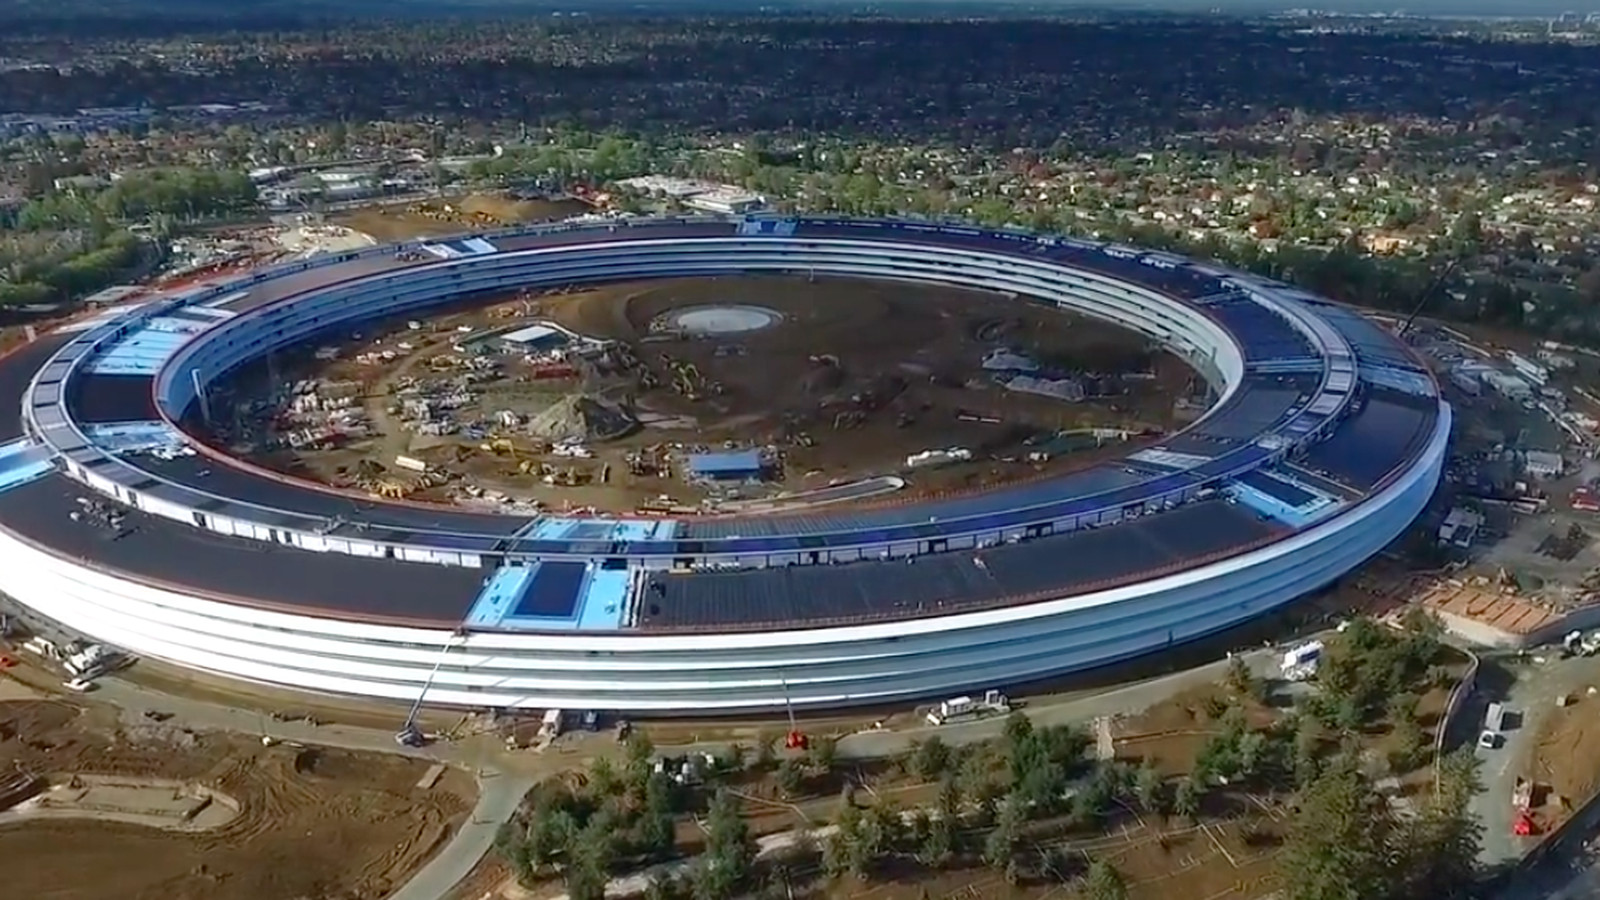 This new drone footage shows that Apple's 'spaceship campus' still has a long way to go